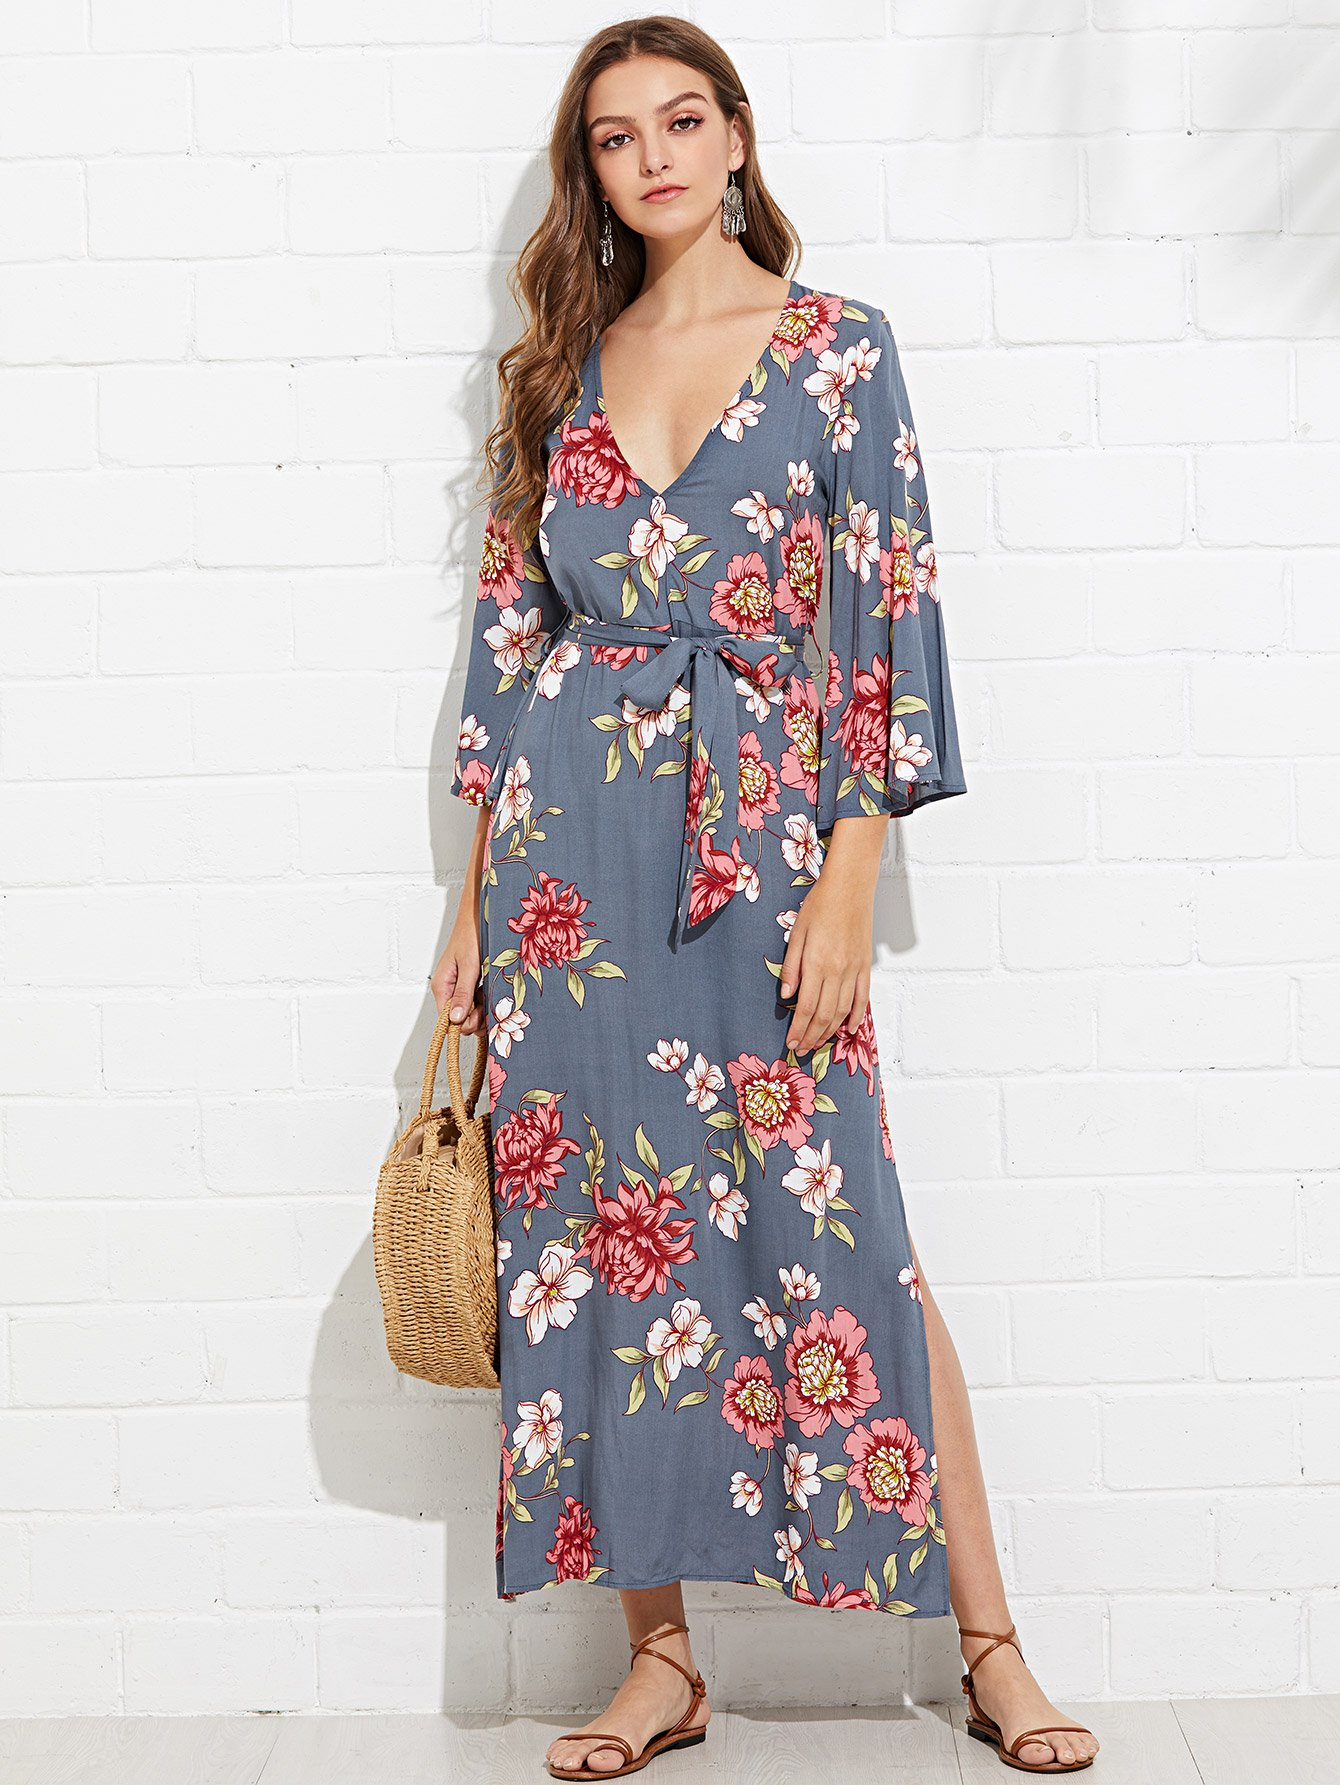 Bell Sleeve Floral Dress with Belt bohemian bell sleeve floral midi dress